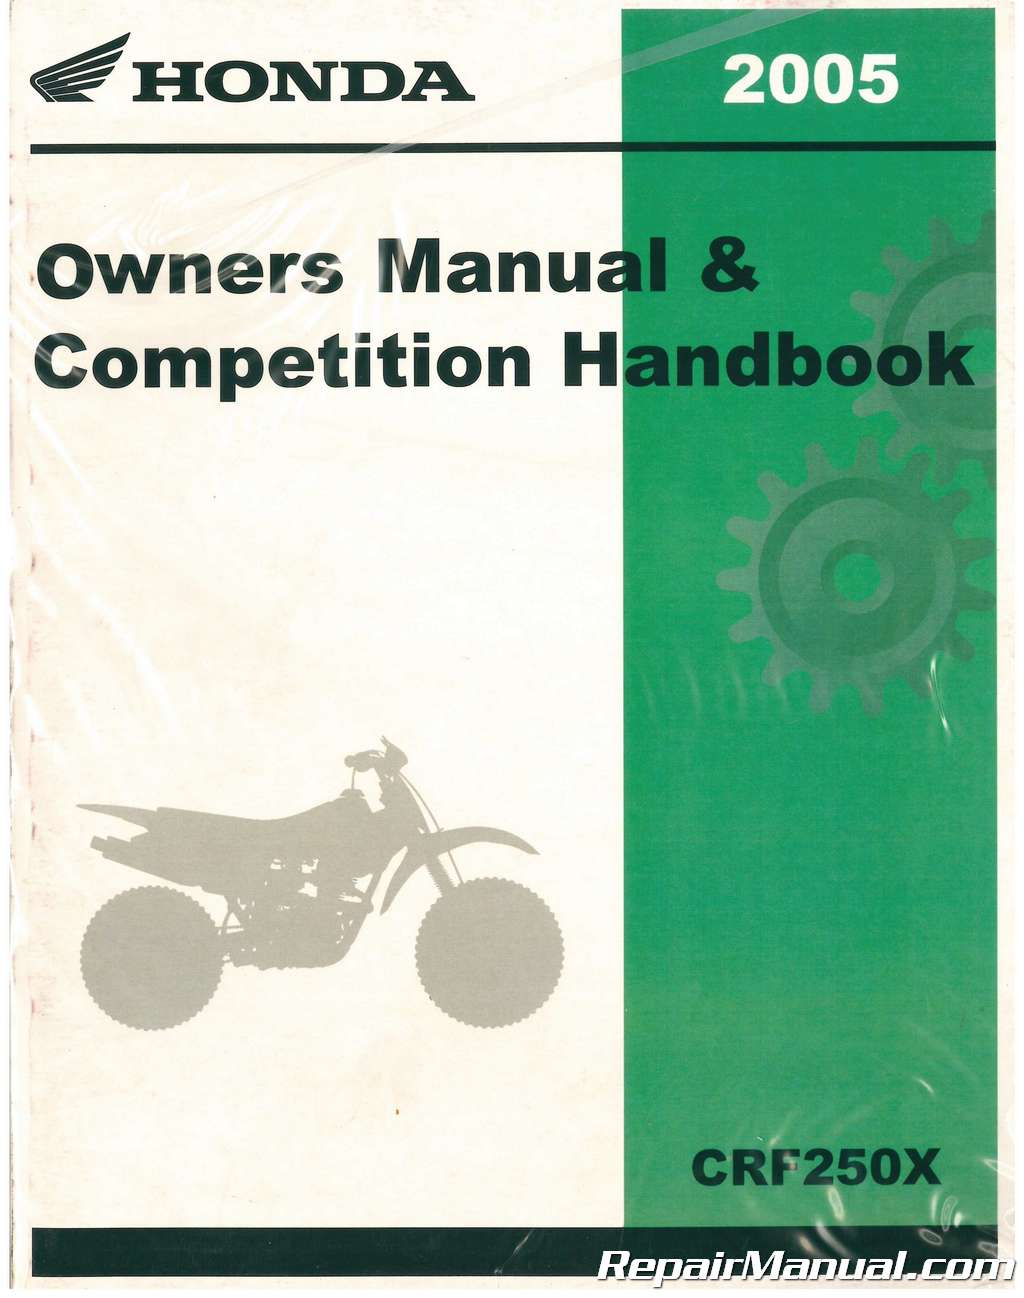 2005 honda crf250x motorcycle owners manual competition handbook